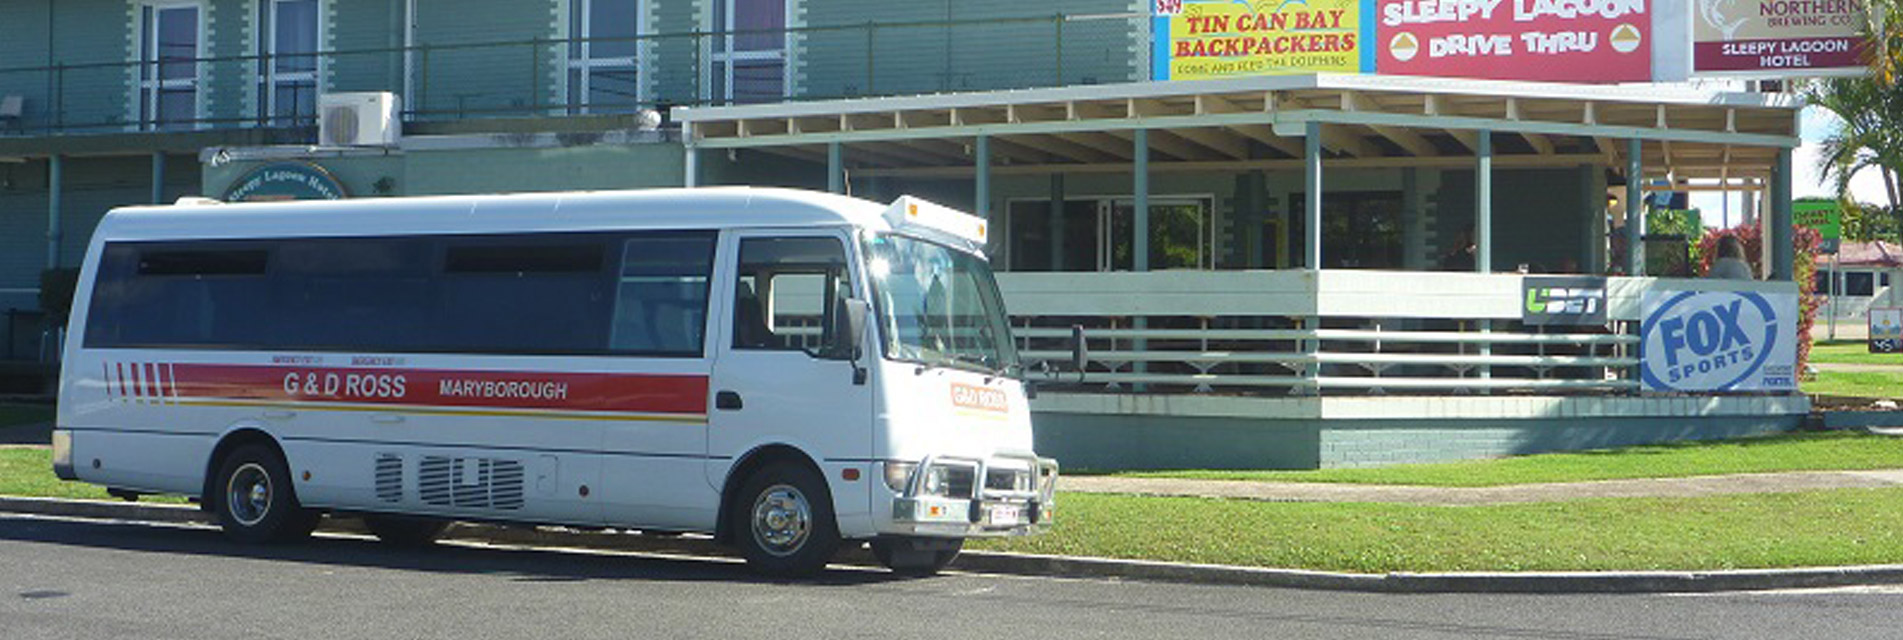 G&D Tours Bus — Tours in Maryborough QLD